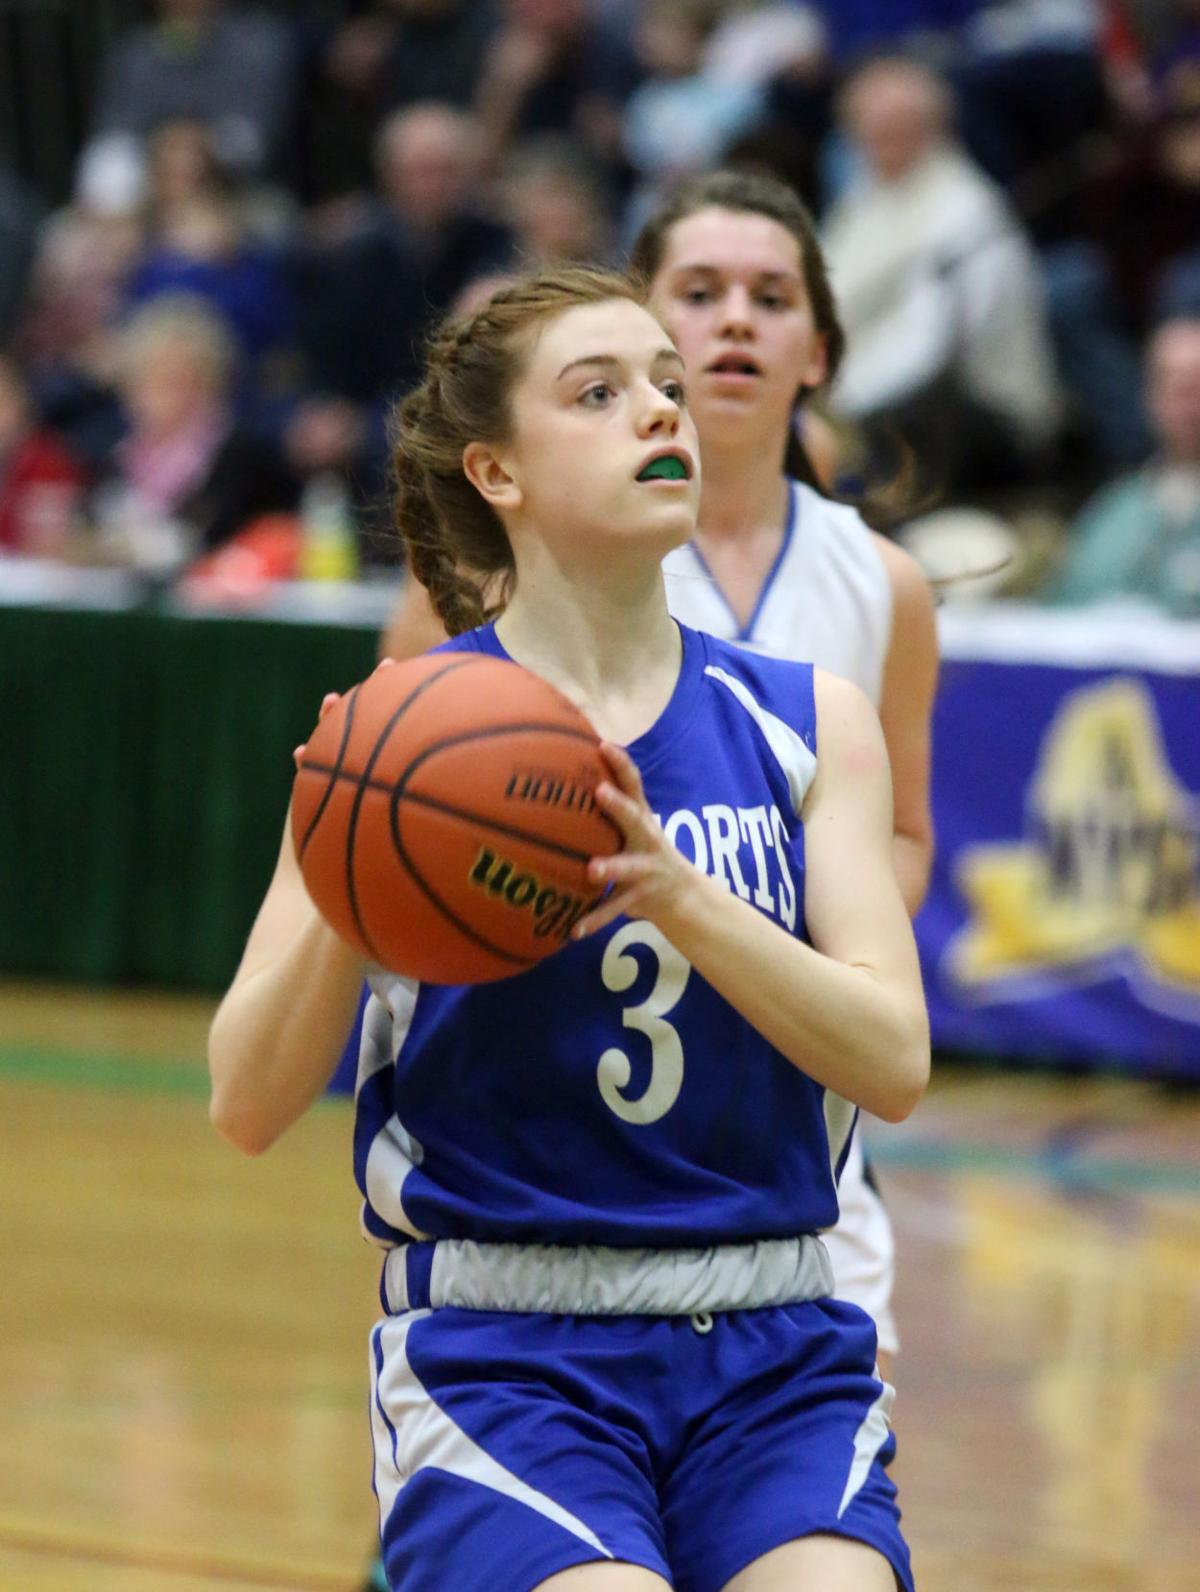 south kortright women Submit the 2018-19 south kortright central basketball schedule to maxpreps.